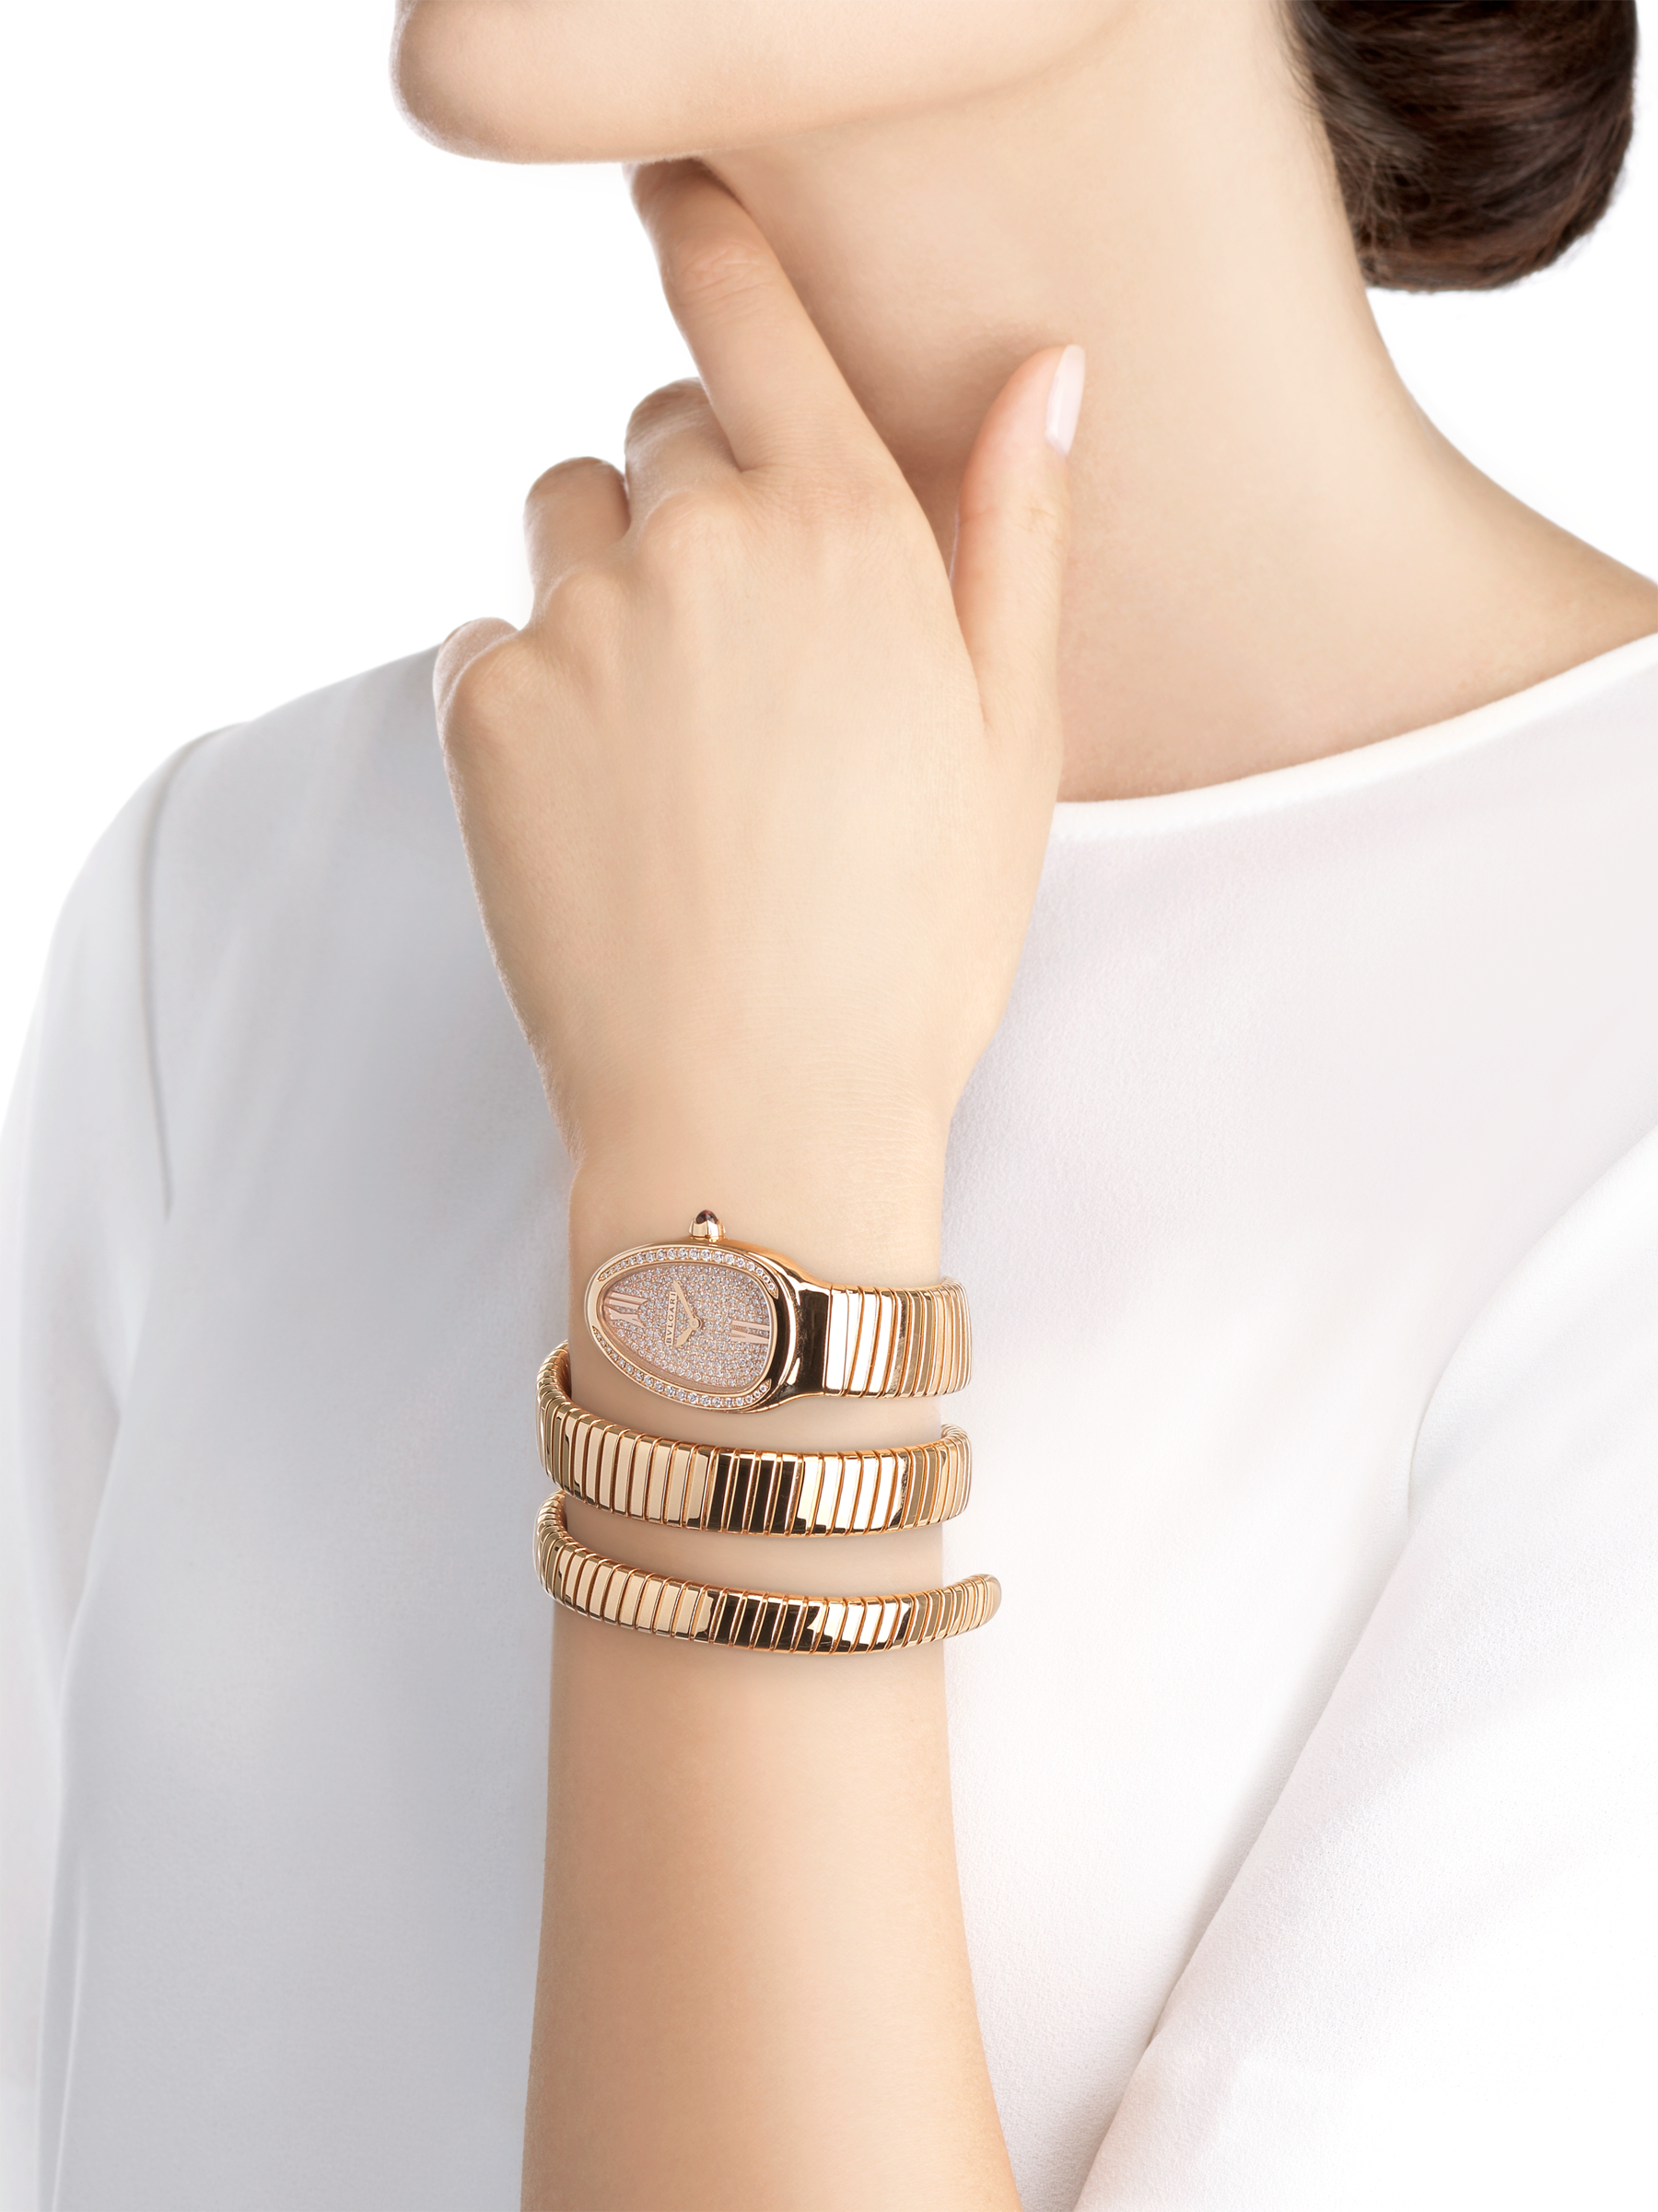 Serpenti Tubogas double spiral watch with 18 kt rose gold case set with brilliant cut diamonds, 18 kt rose gold dial set with full pavé brilliant cut diamonds and 18 kt rose gold bracelet. 101956 image 4